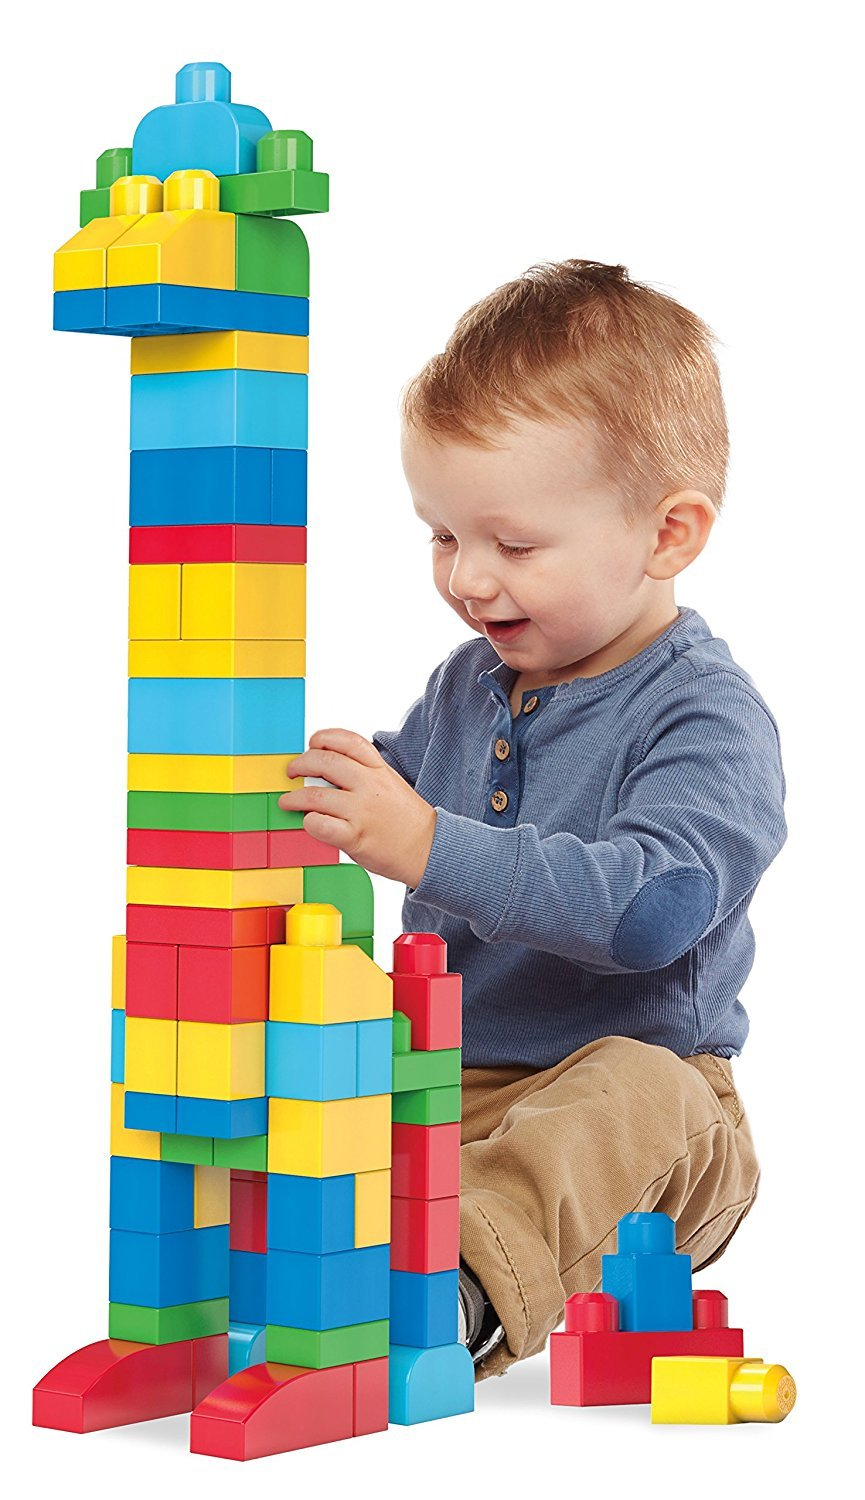 Large Construction Toys For Boys : Best gifts for year old boys in itsy bitsy fun